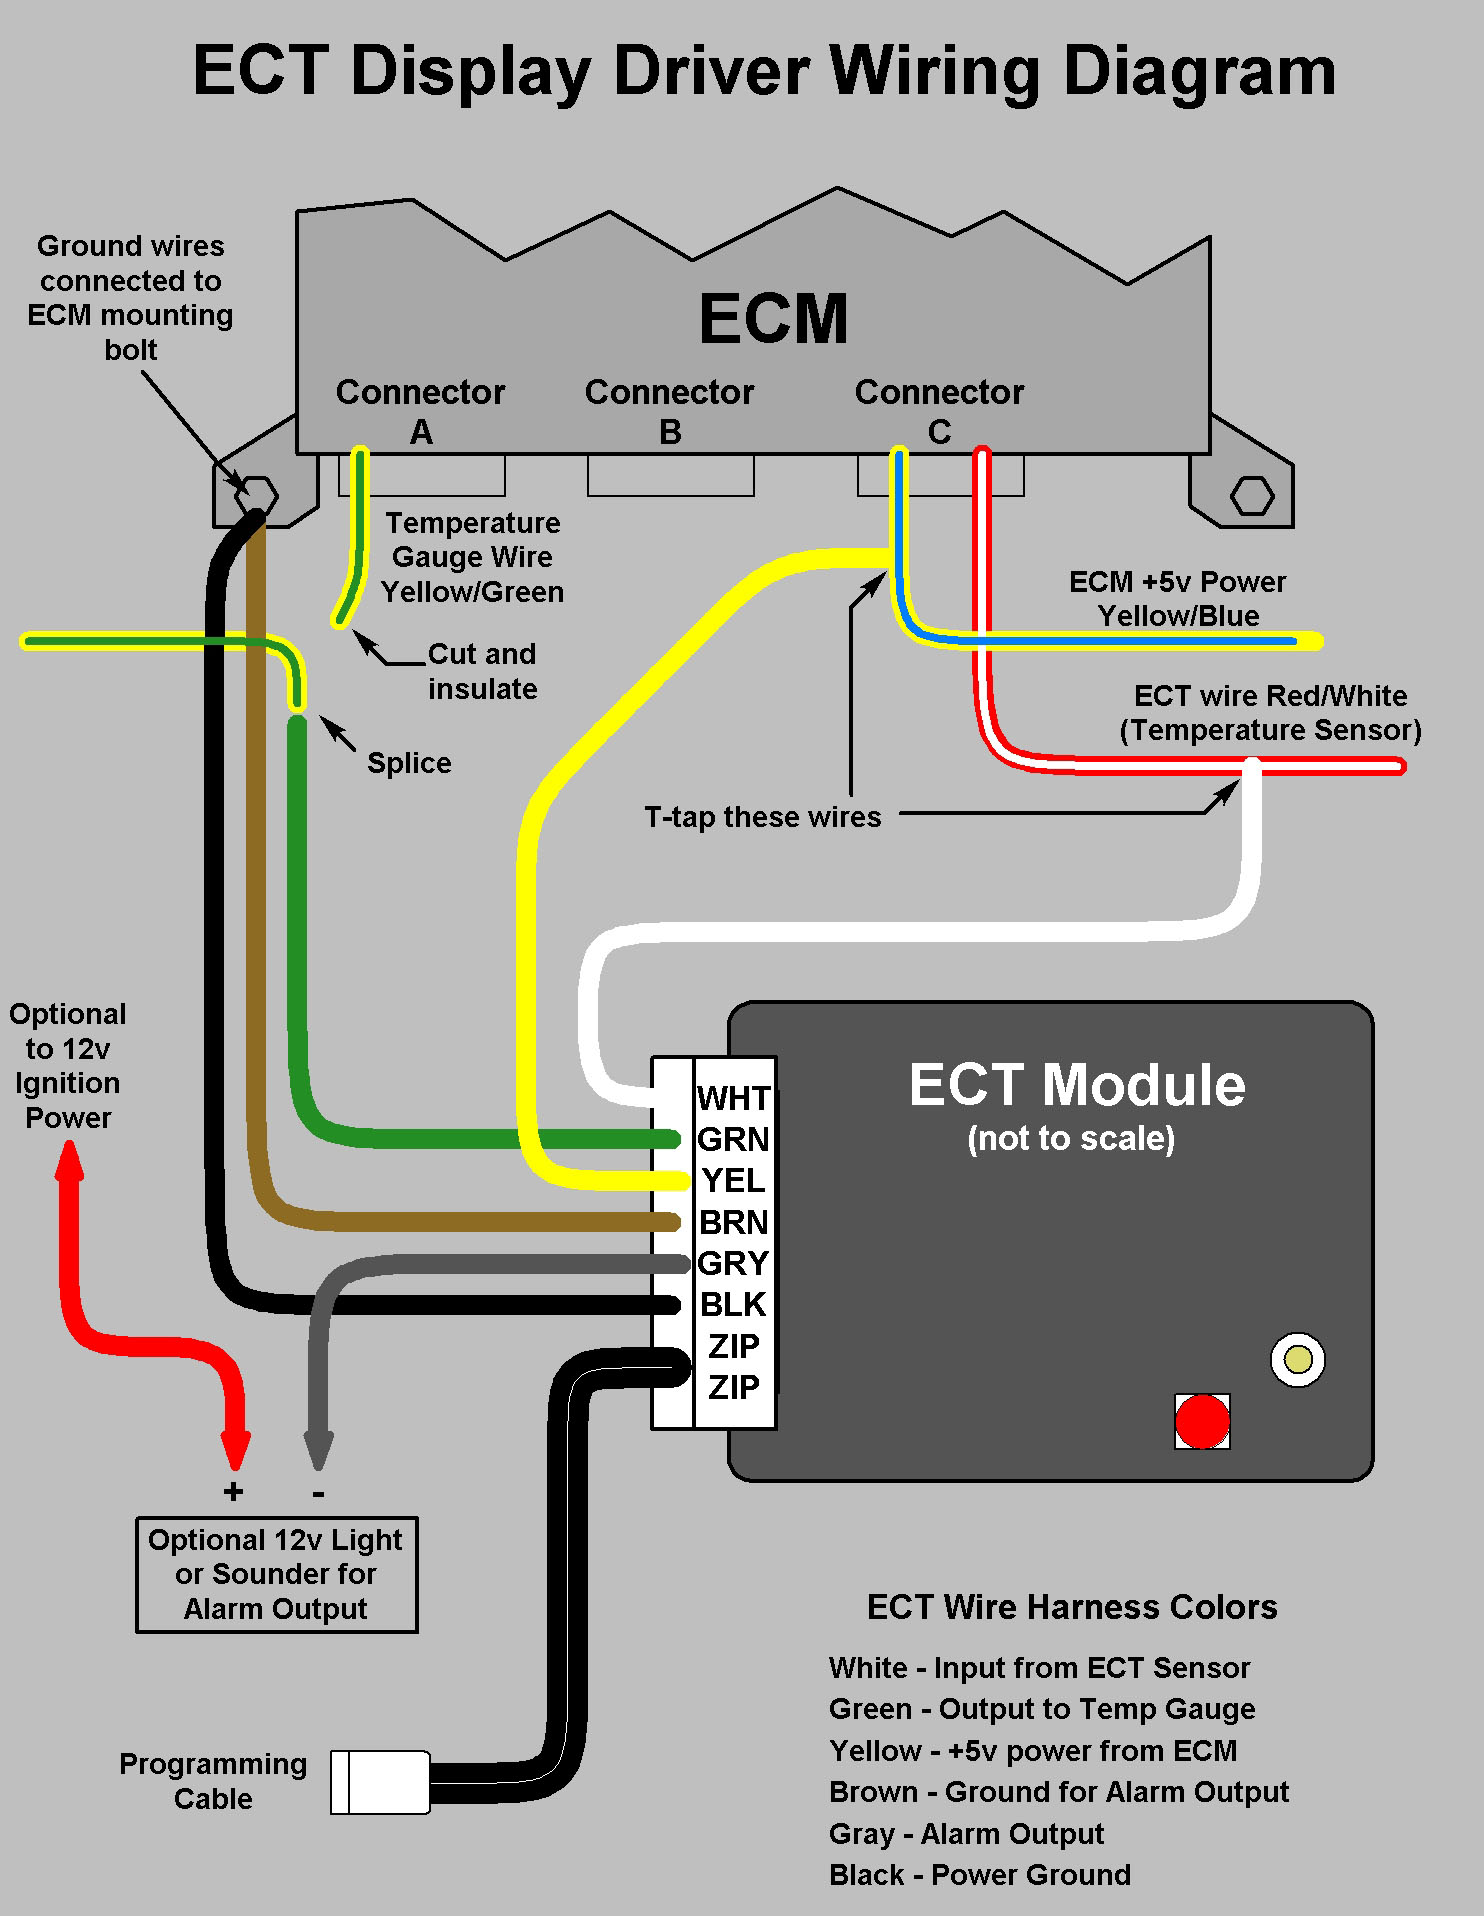 ECT wiring diagram aem ems 4 wiring diagram aem ems fox body mustangs \u2022 free wiring ems stinger wiring diagram at fashall.co